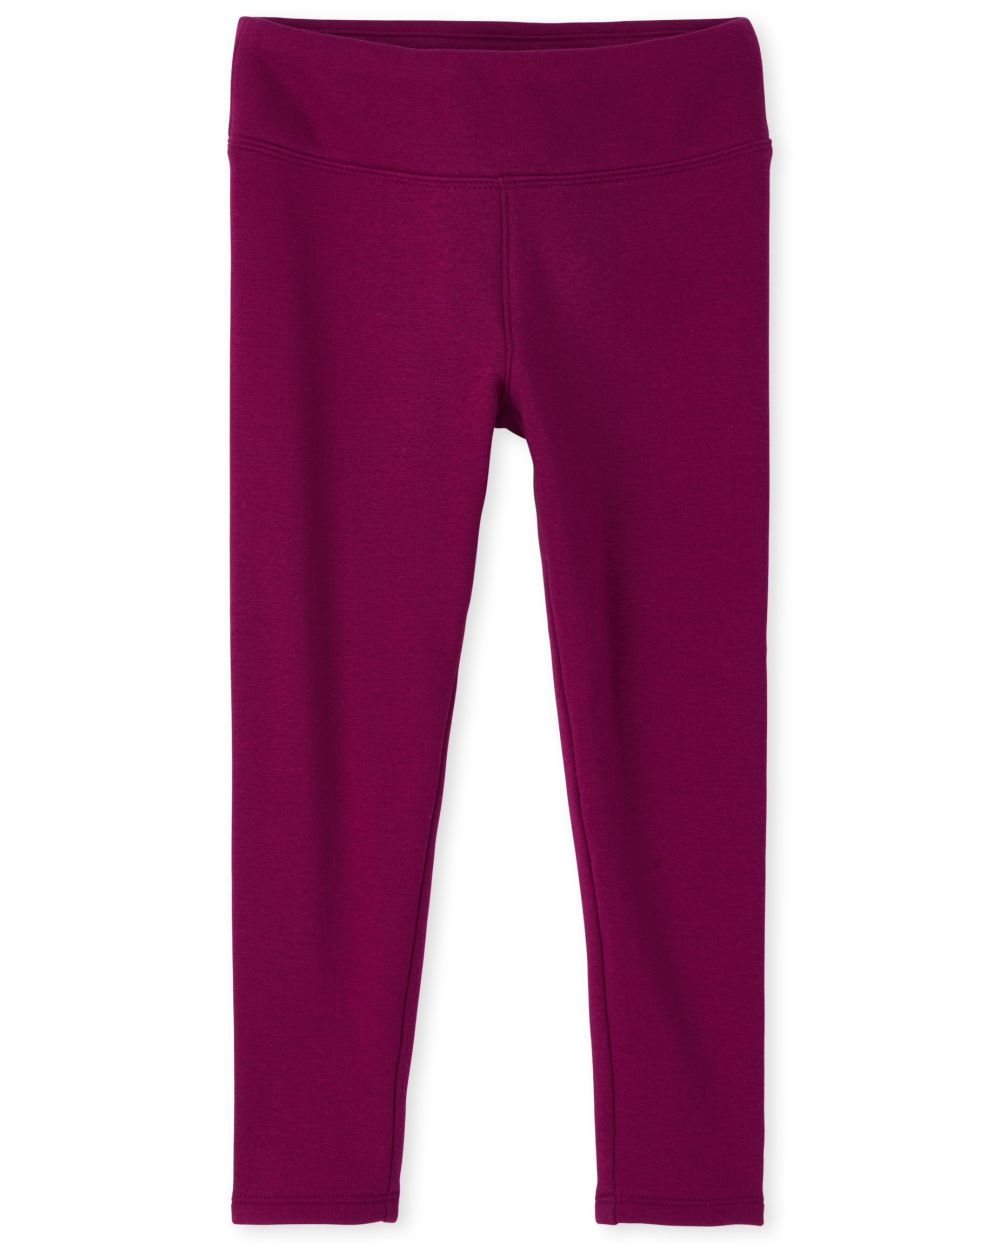 Girls Stretch Cozy Leggings